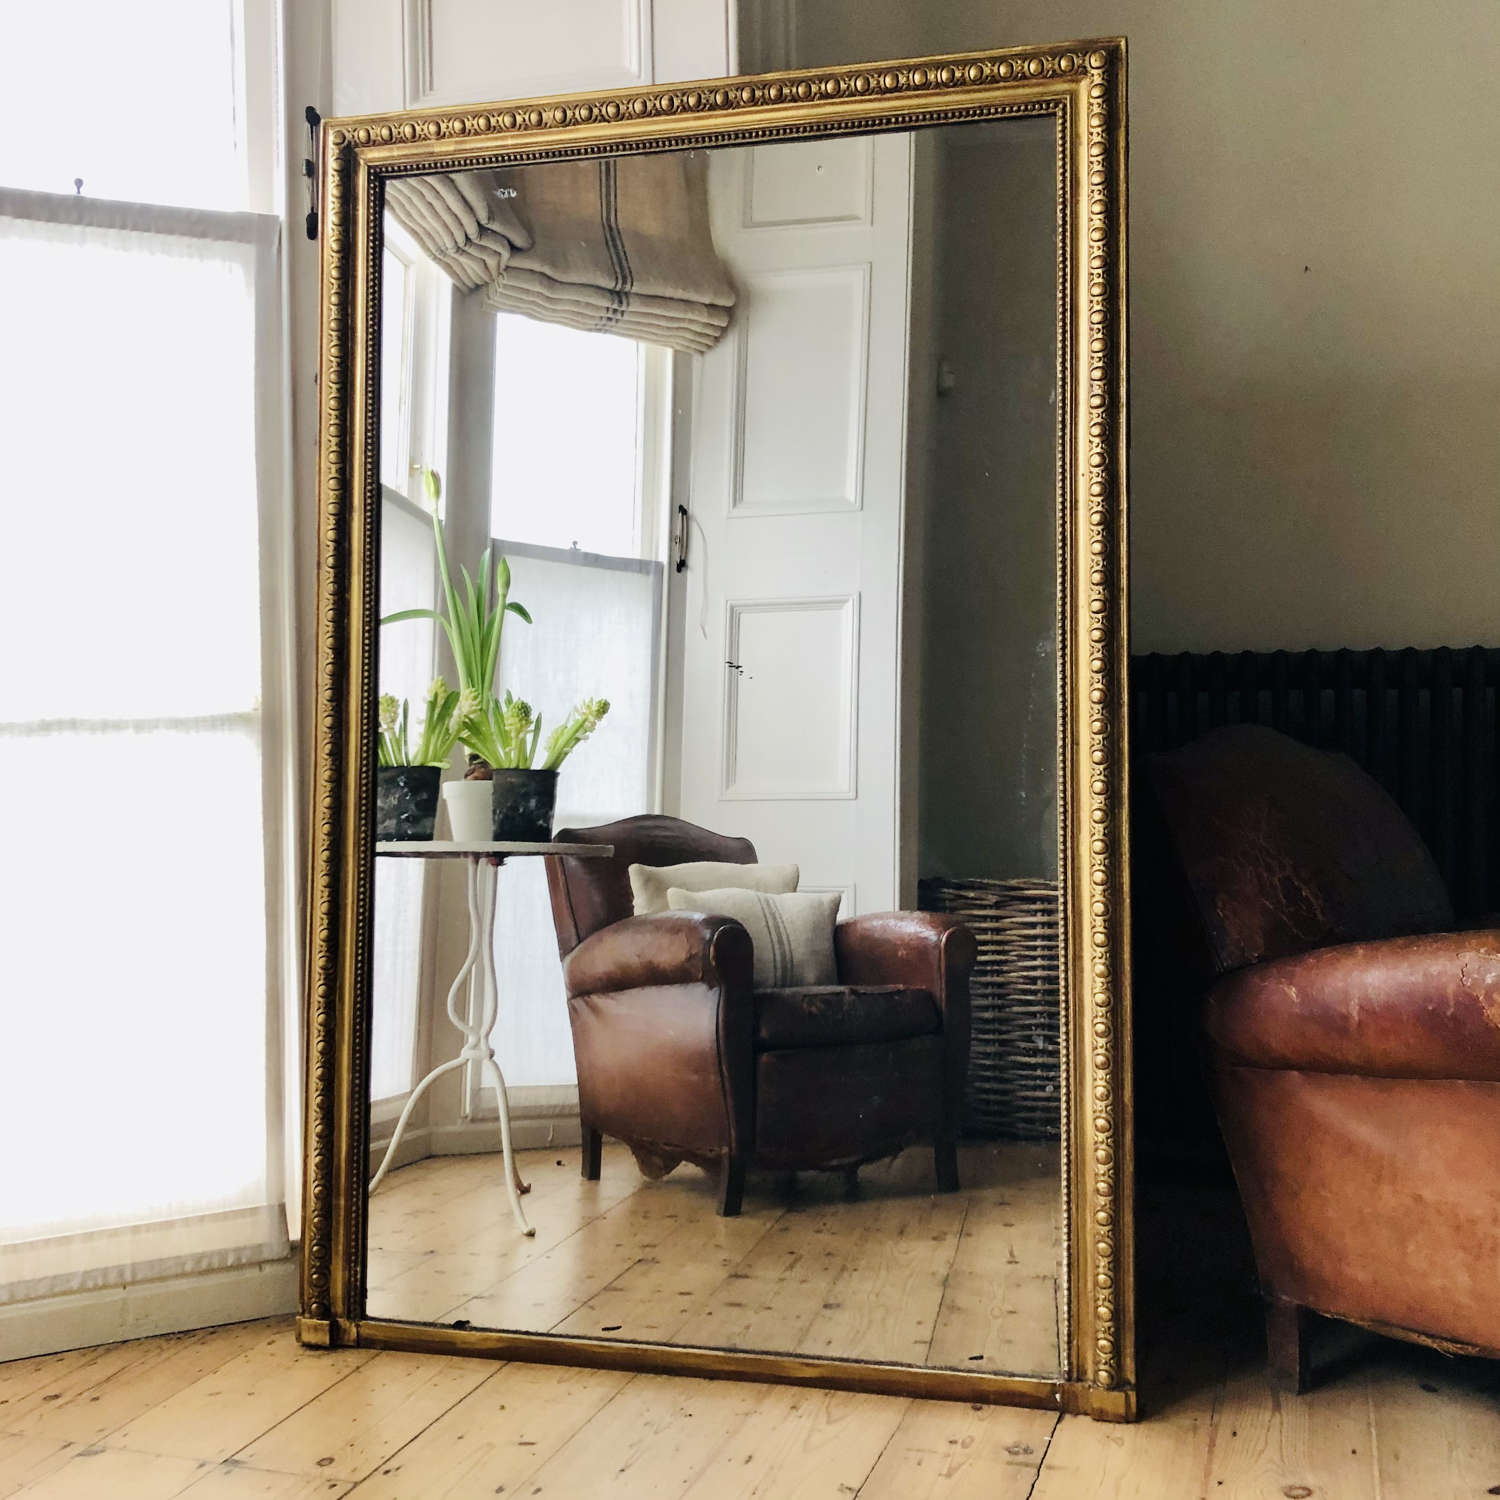 19th century French gilt leaner mirror overmantel